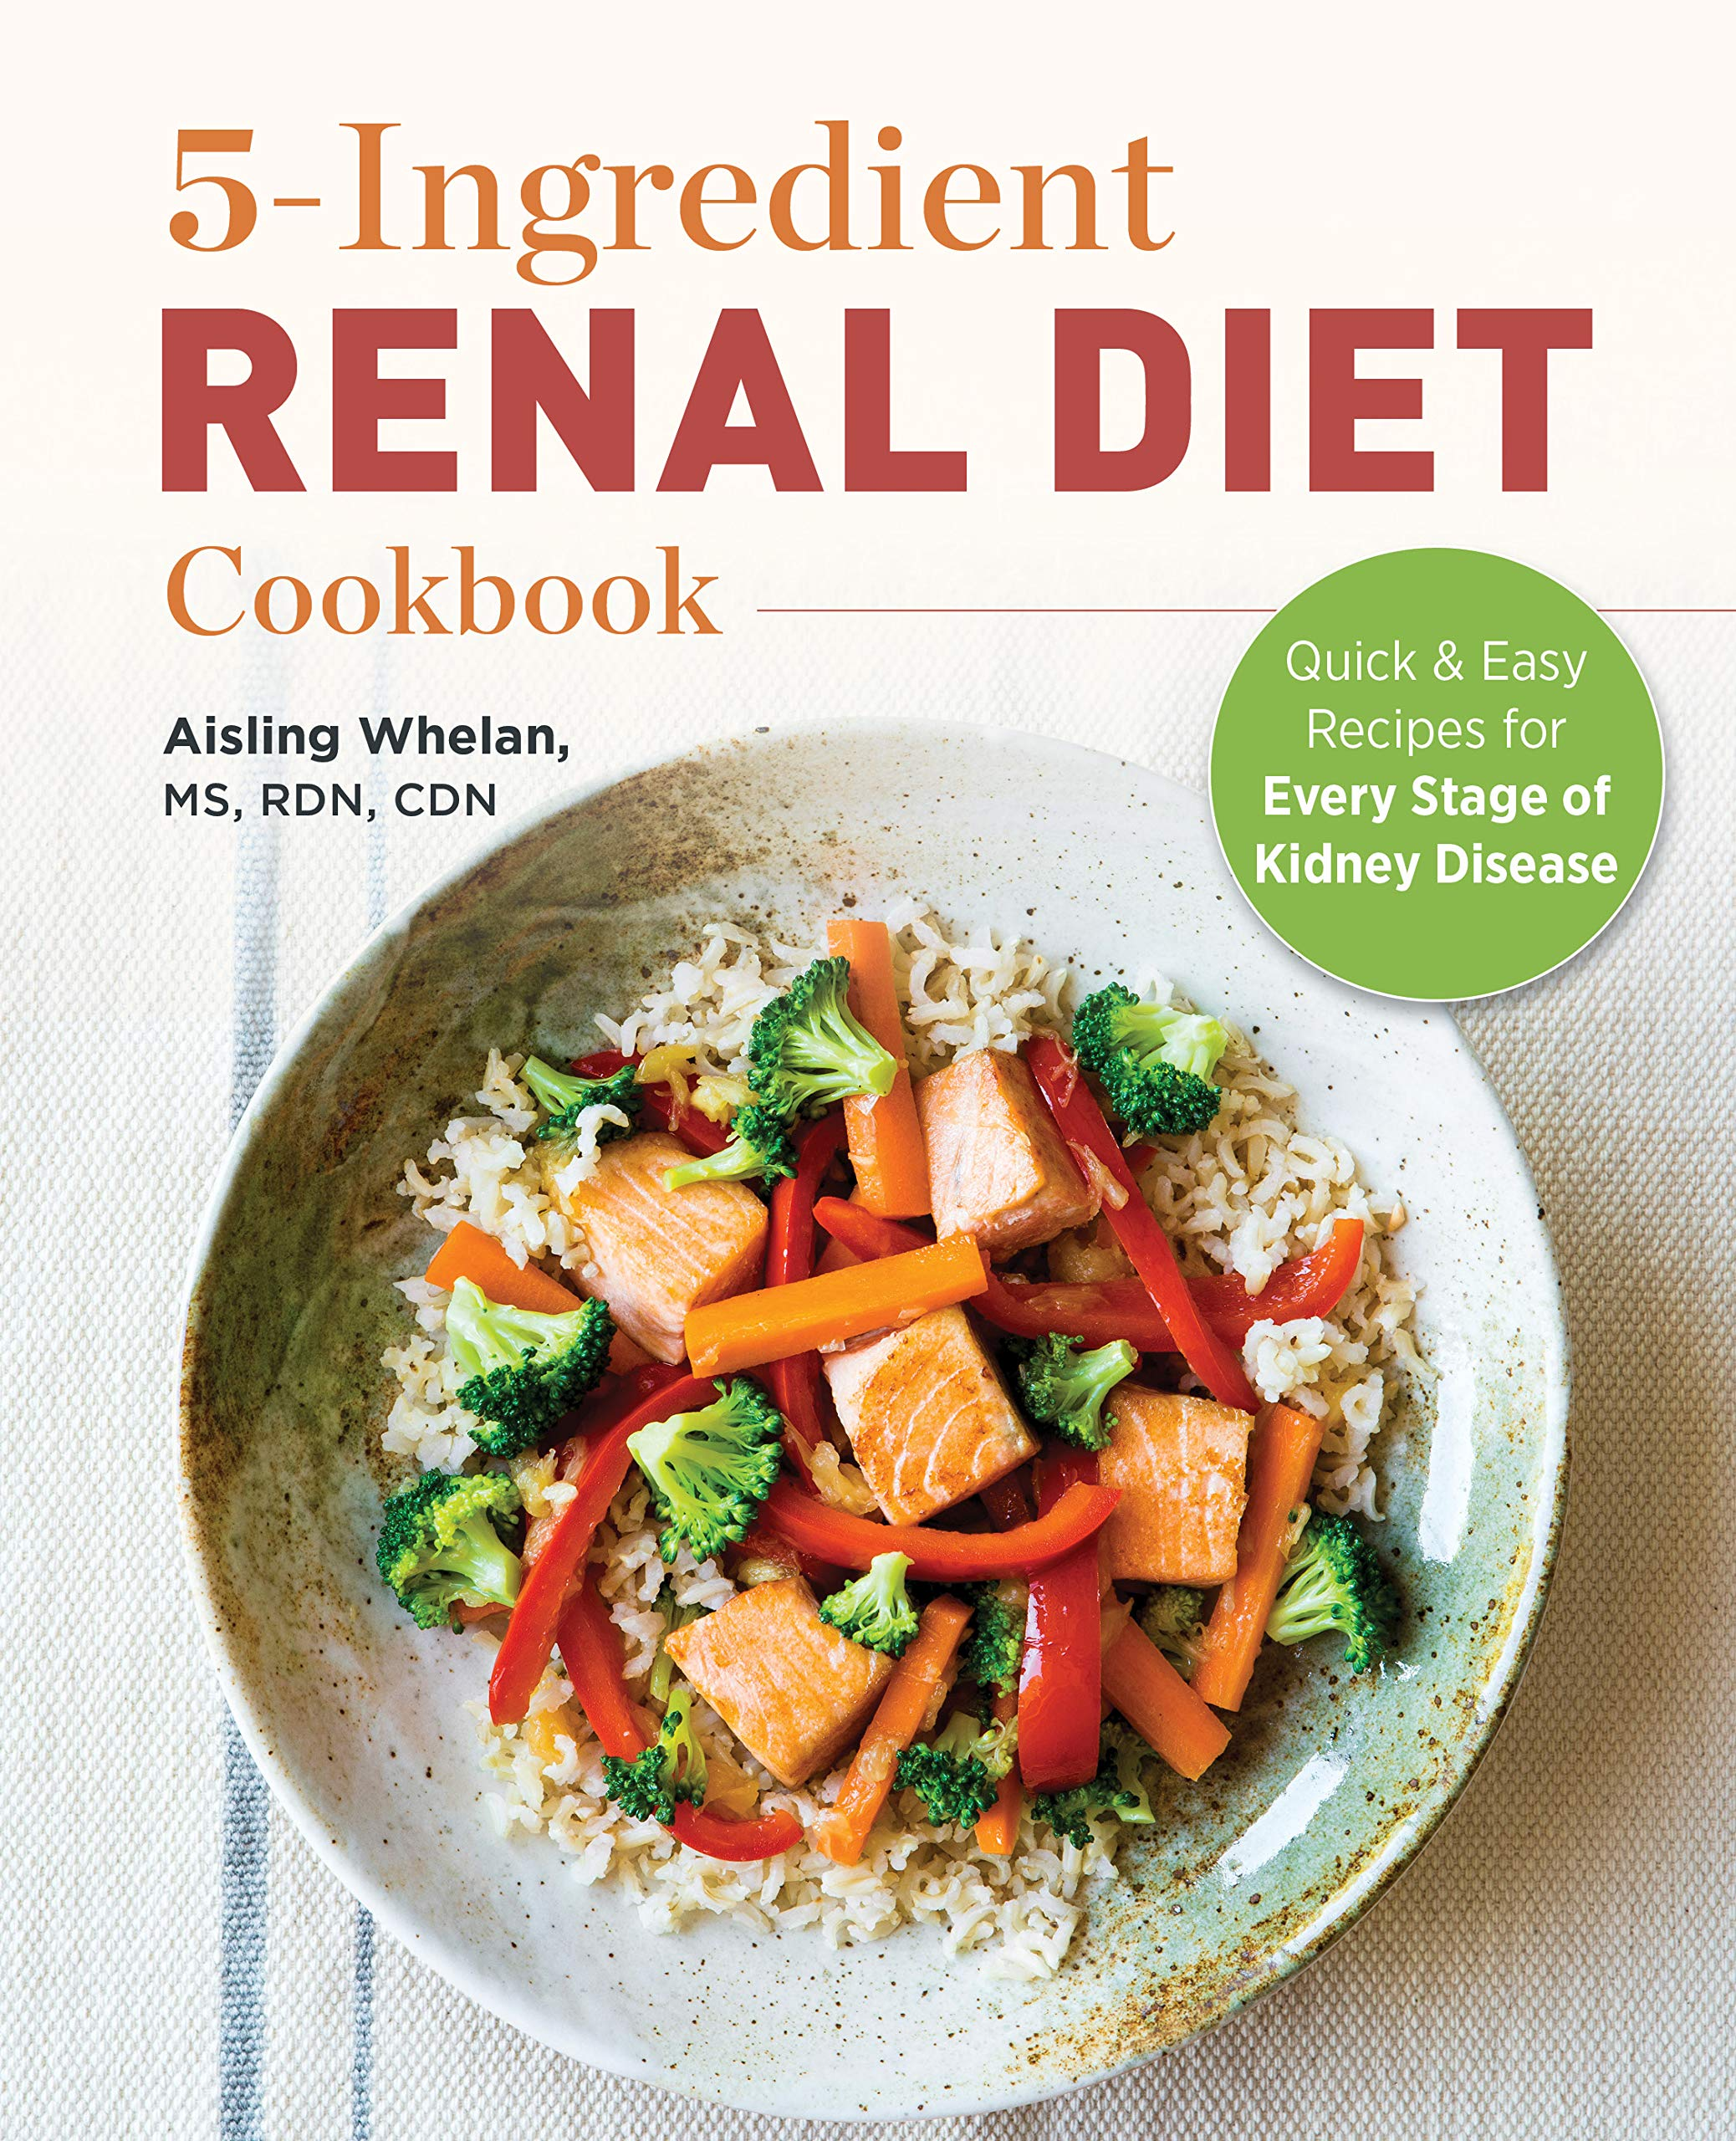 10 Ingredient Renal Diet Cookbook: Quick and Easy Recipes for Every